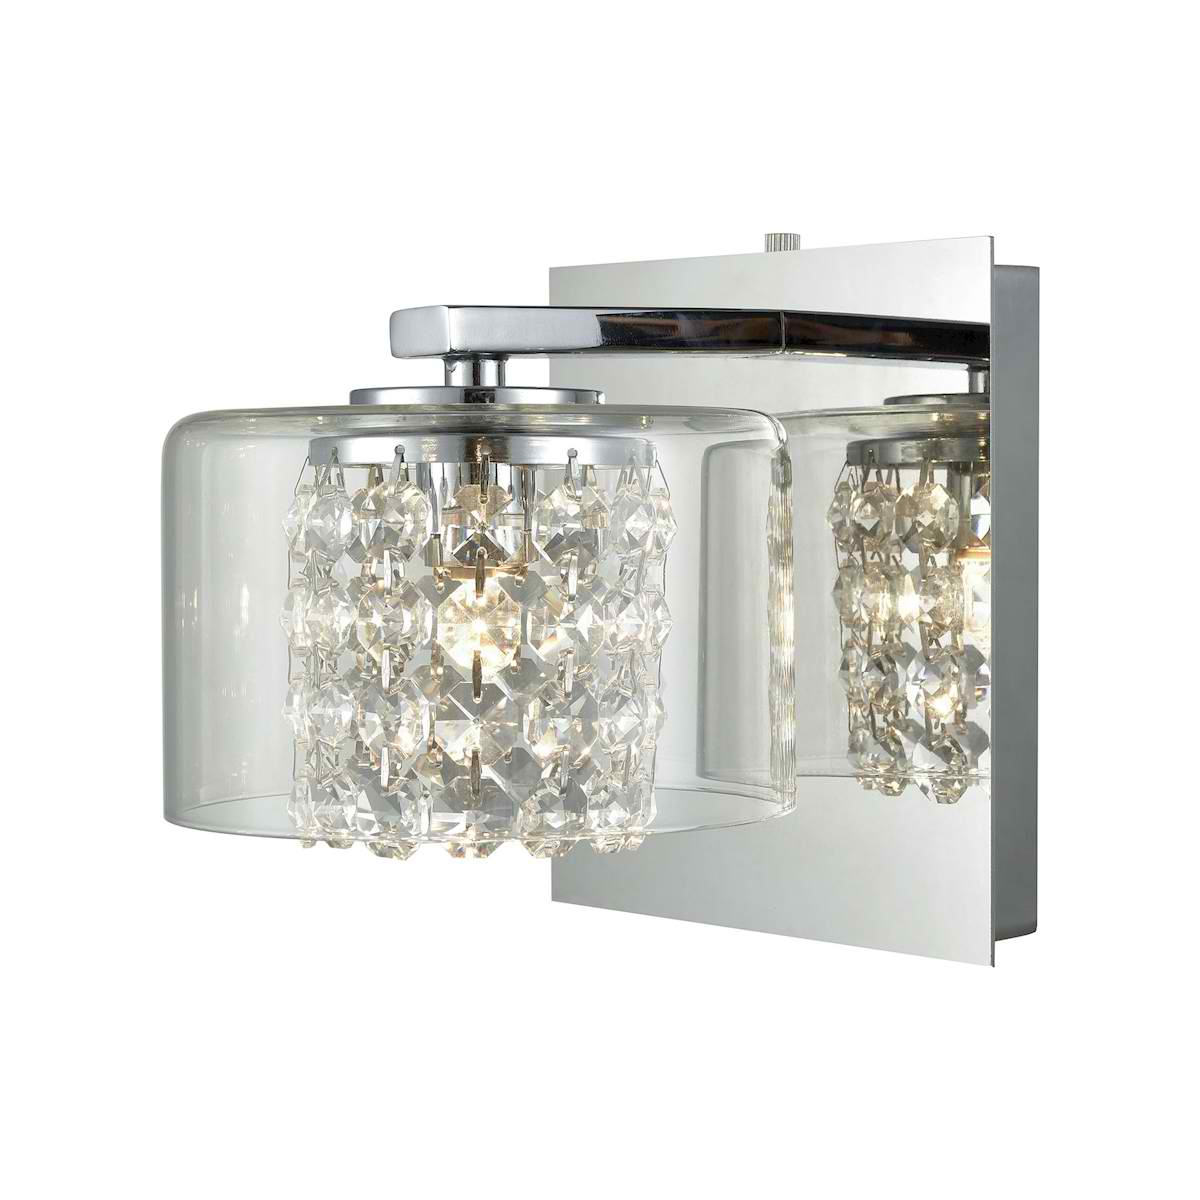 Springvale 1 Light Vanity in Polished Chrome with Clear Crystal and Glass